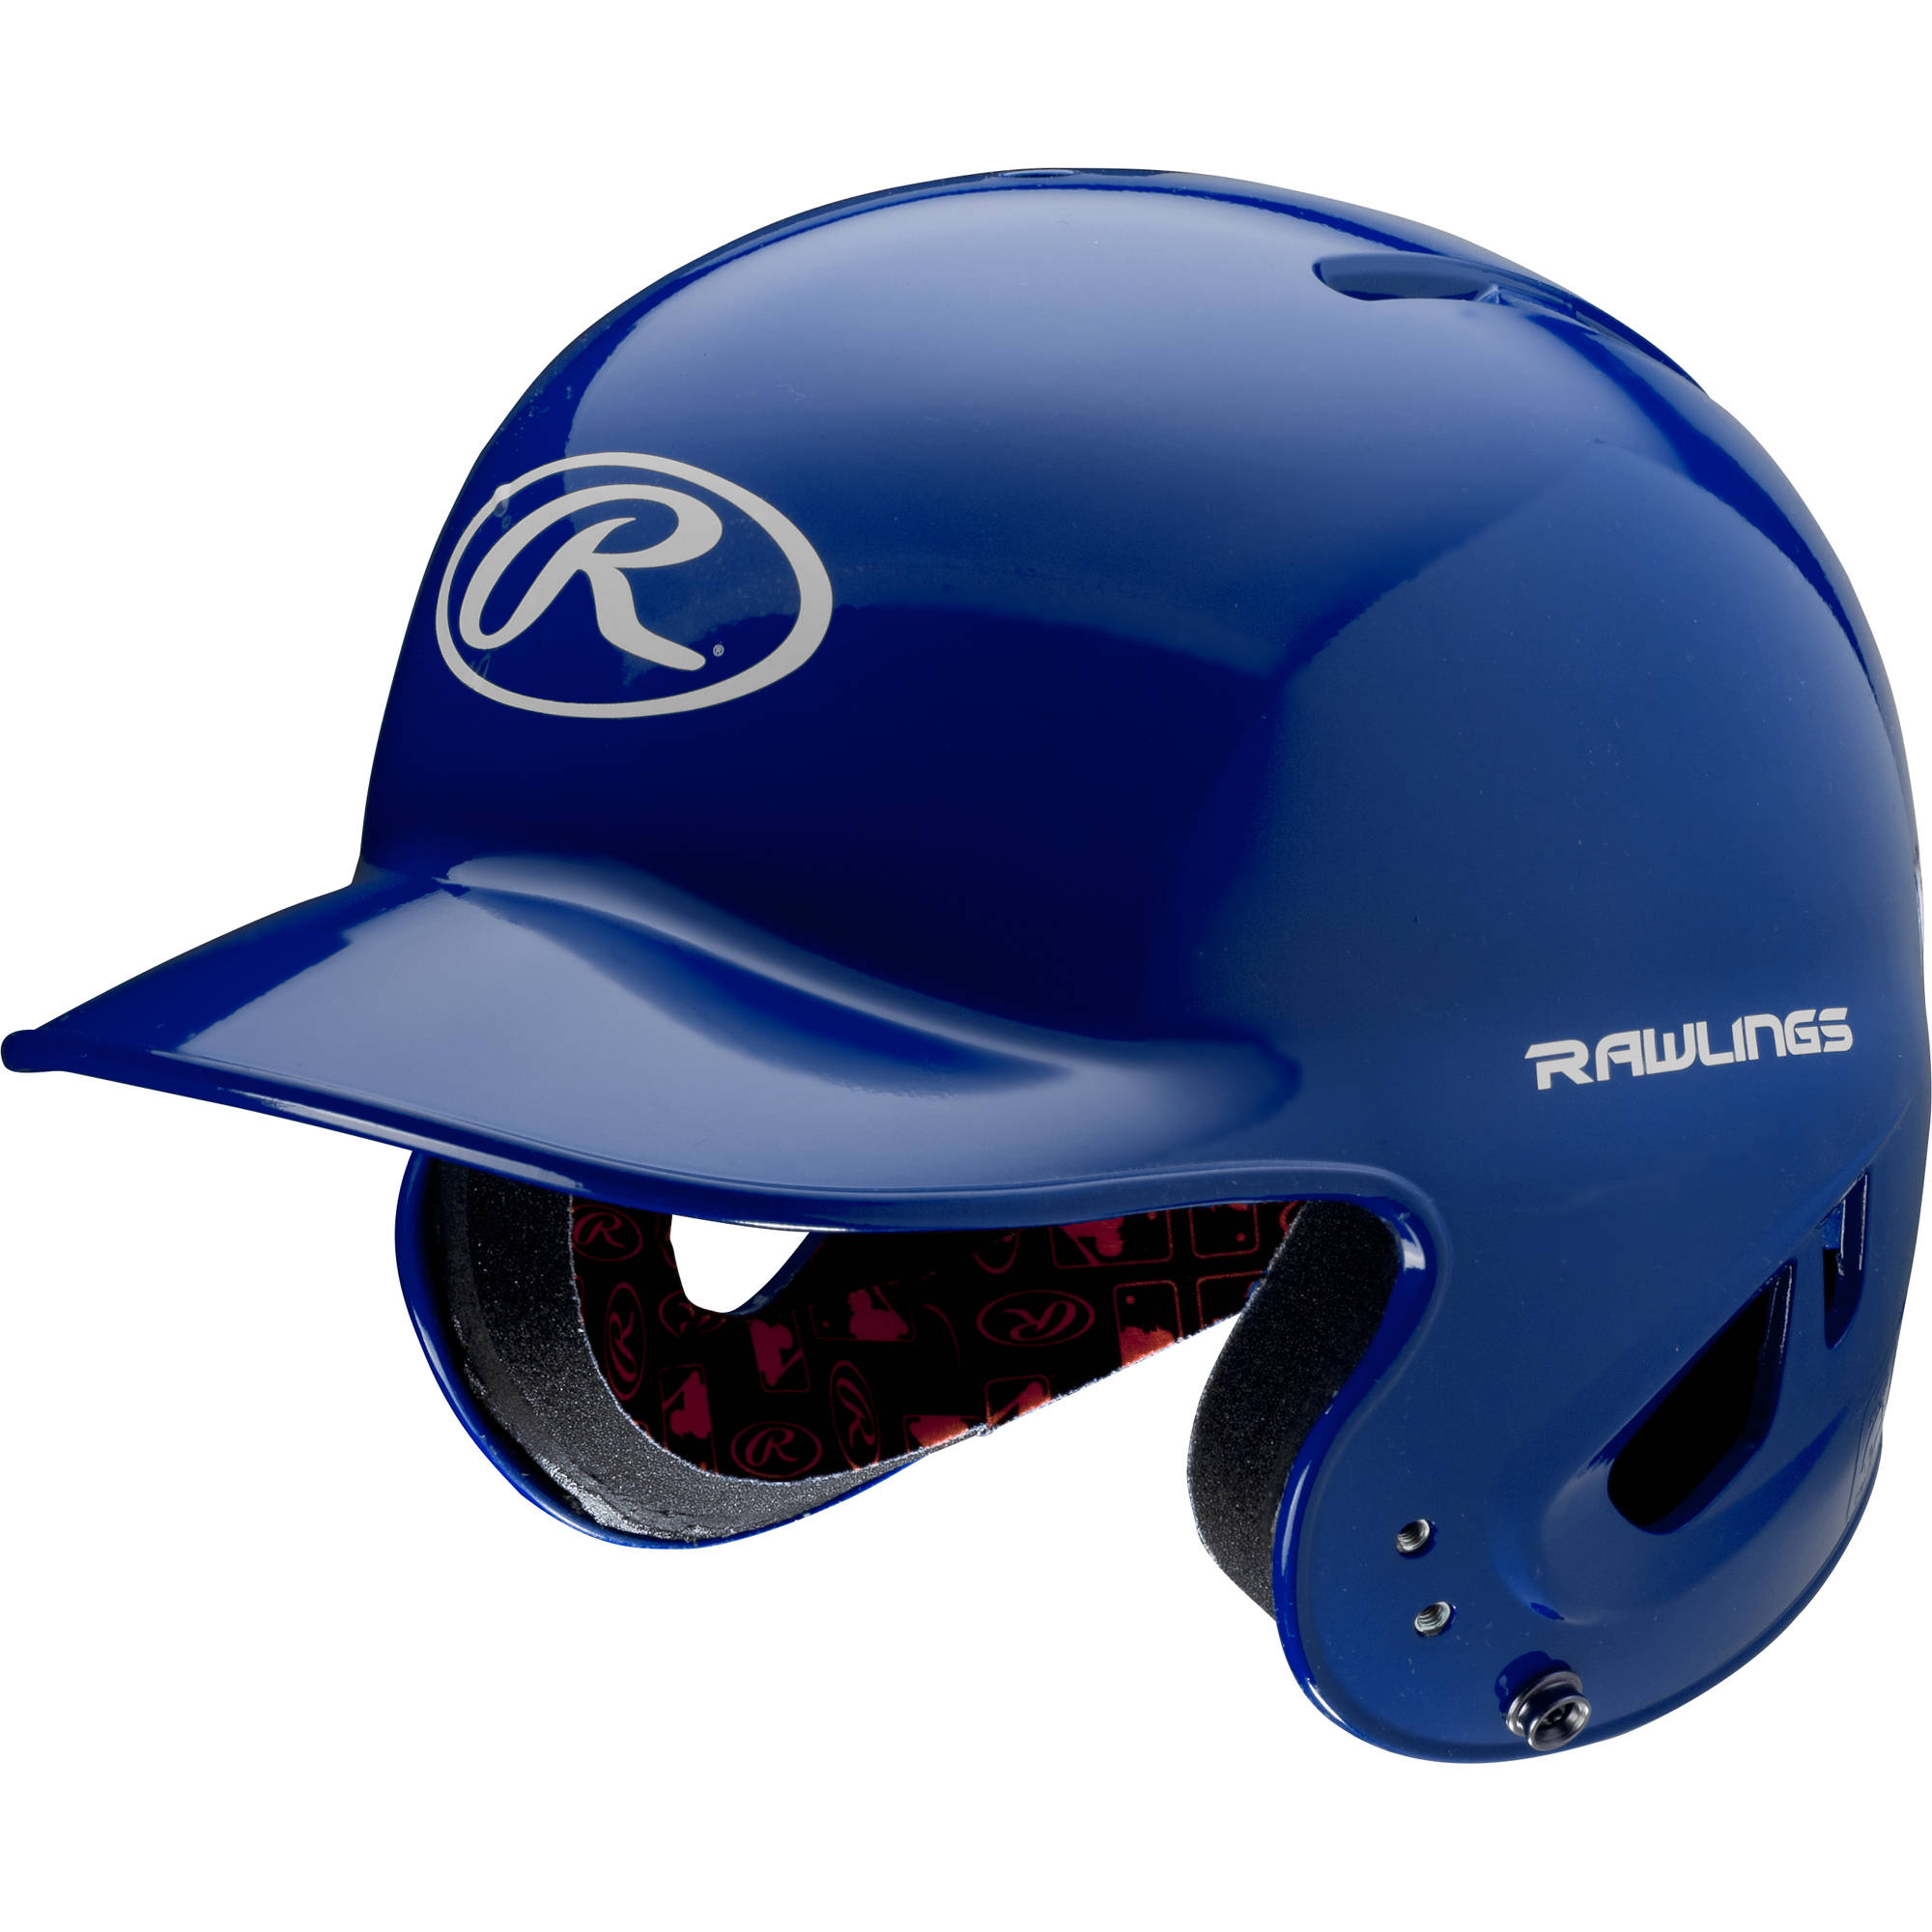 Rawlings MLB Inspired T-Ball Helmet, Royal Blue